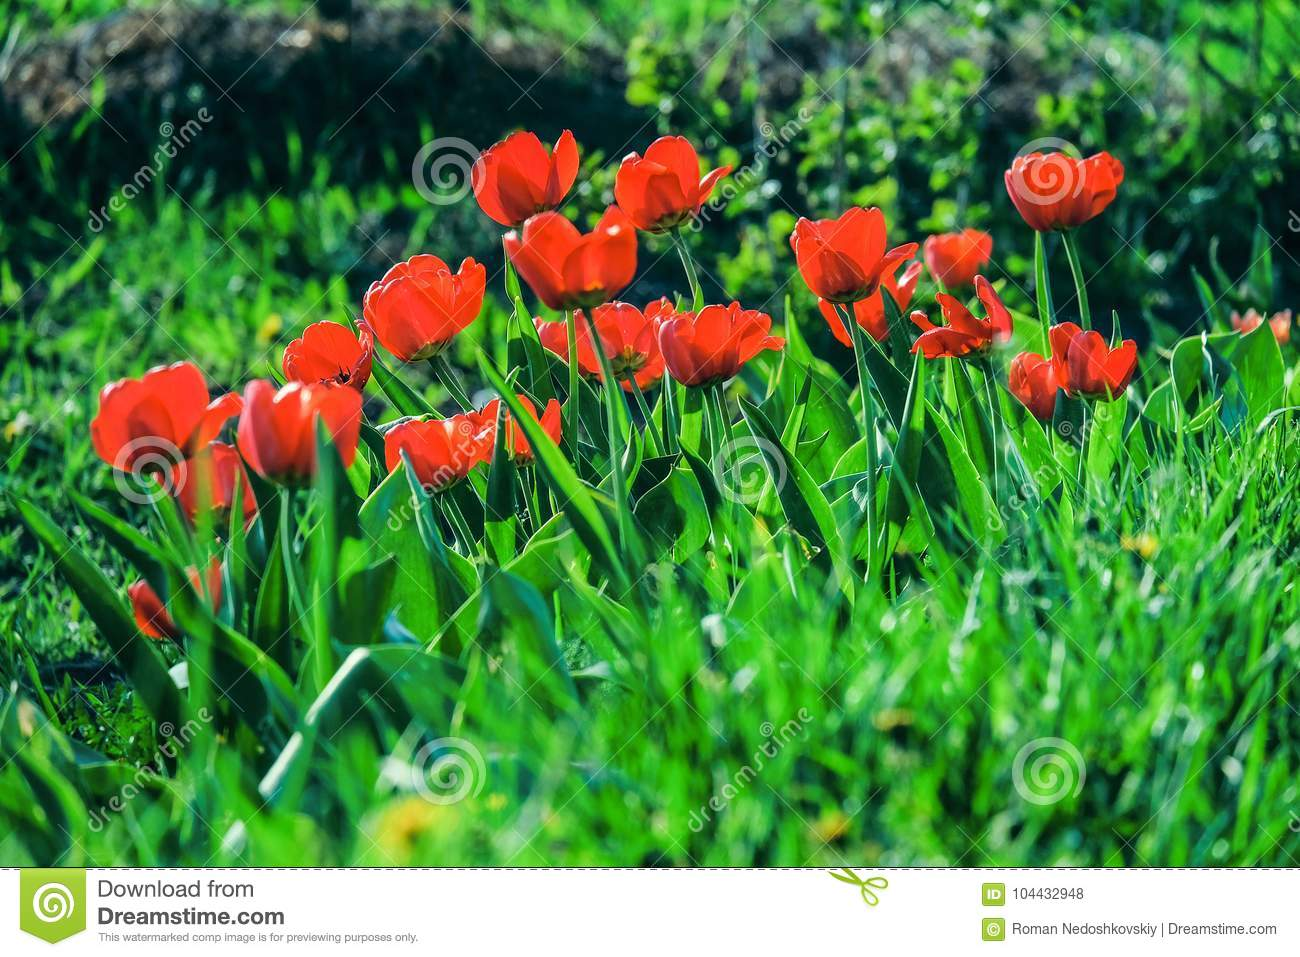 Bright Saturated Red Tulips In The Garden Greenery Spring Flower